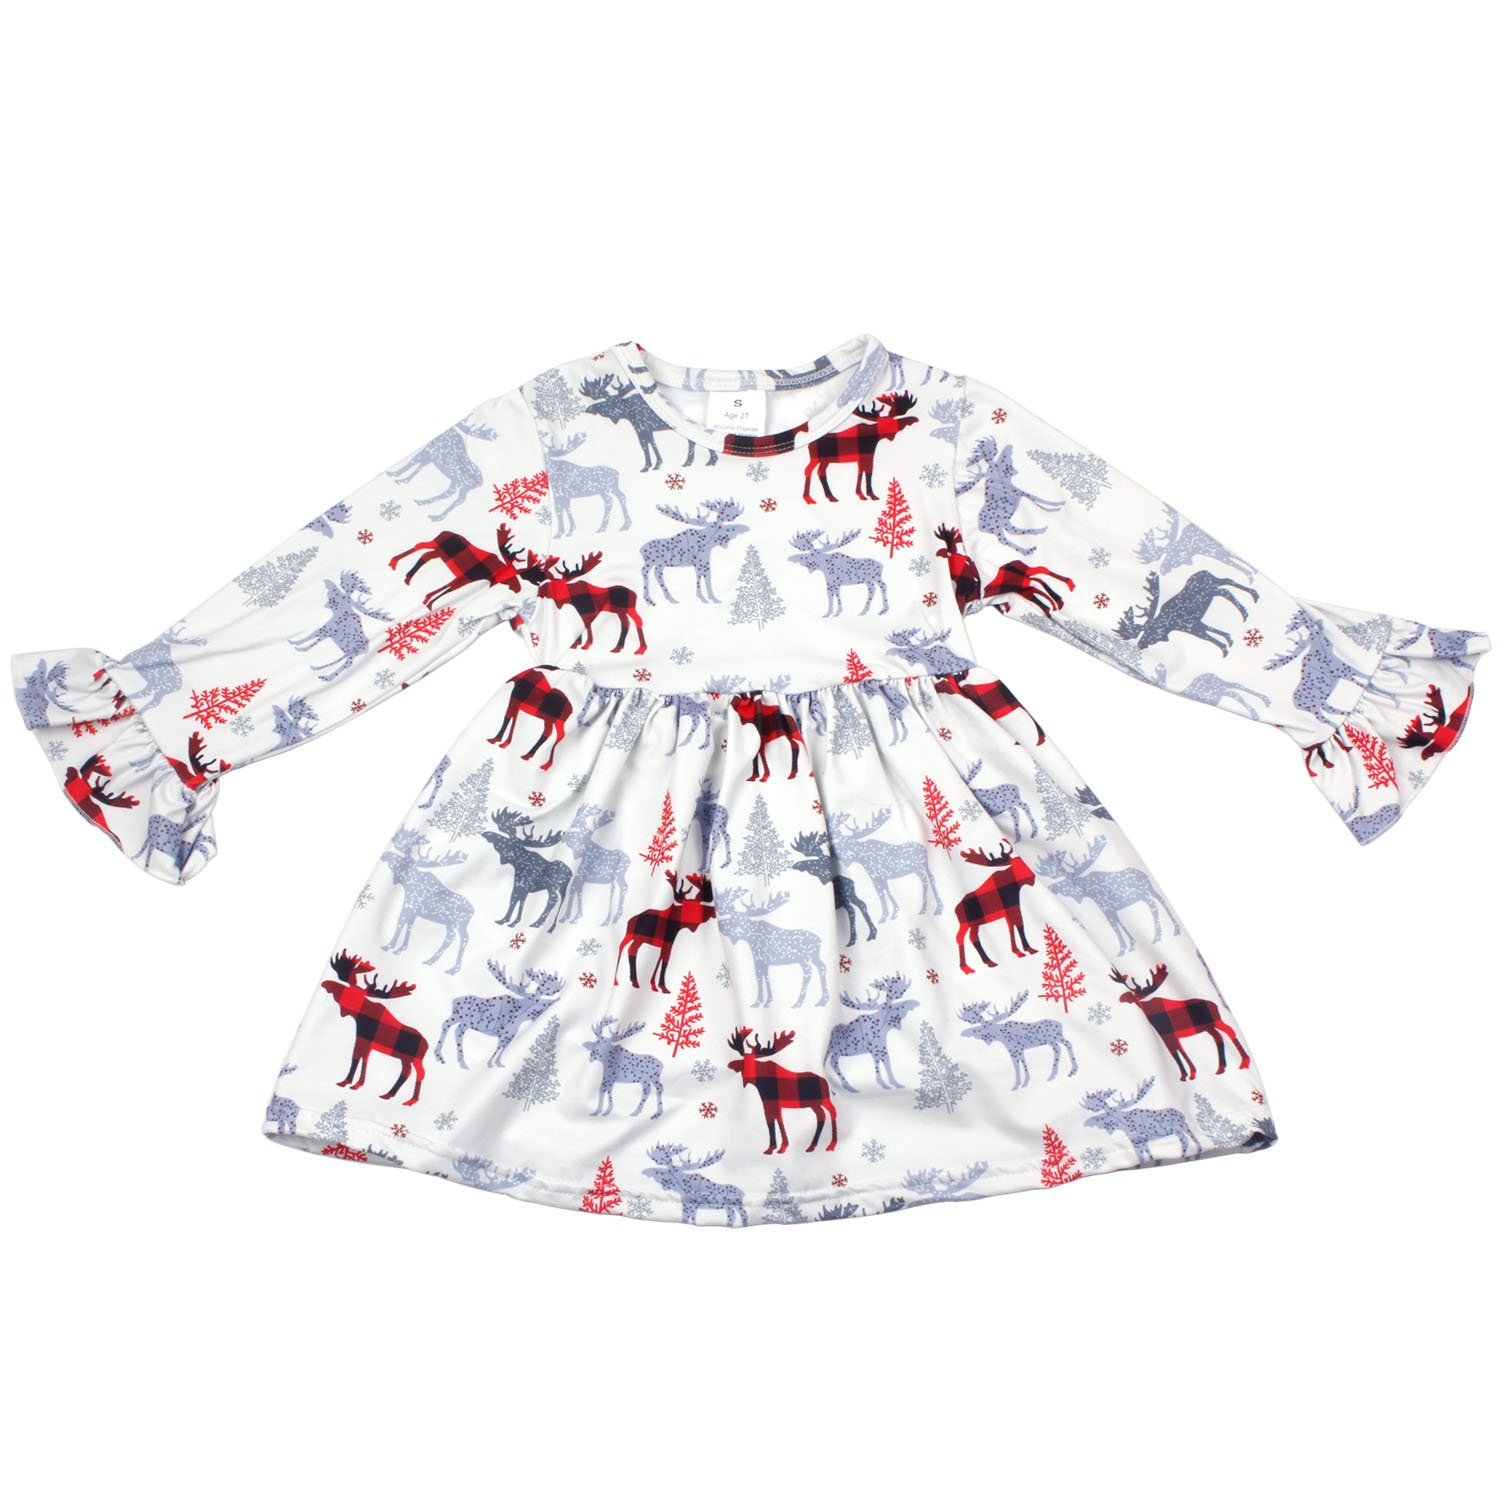 4bad8d7618a03 ... and Flexible,It\'s feel very comfortable,Suitable for your children to  wear in the autumn and winter. Little girls Christmas tree & reindeer  printed ...